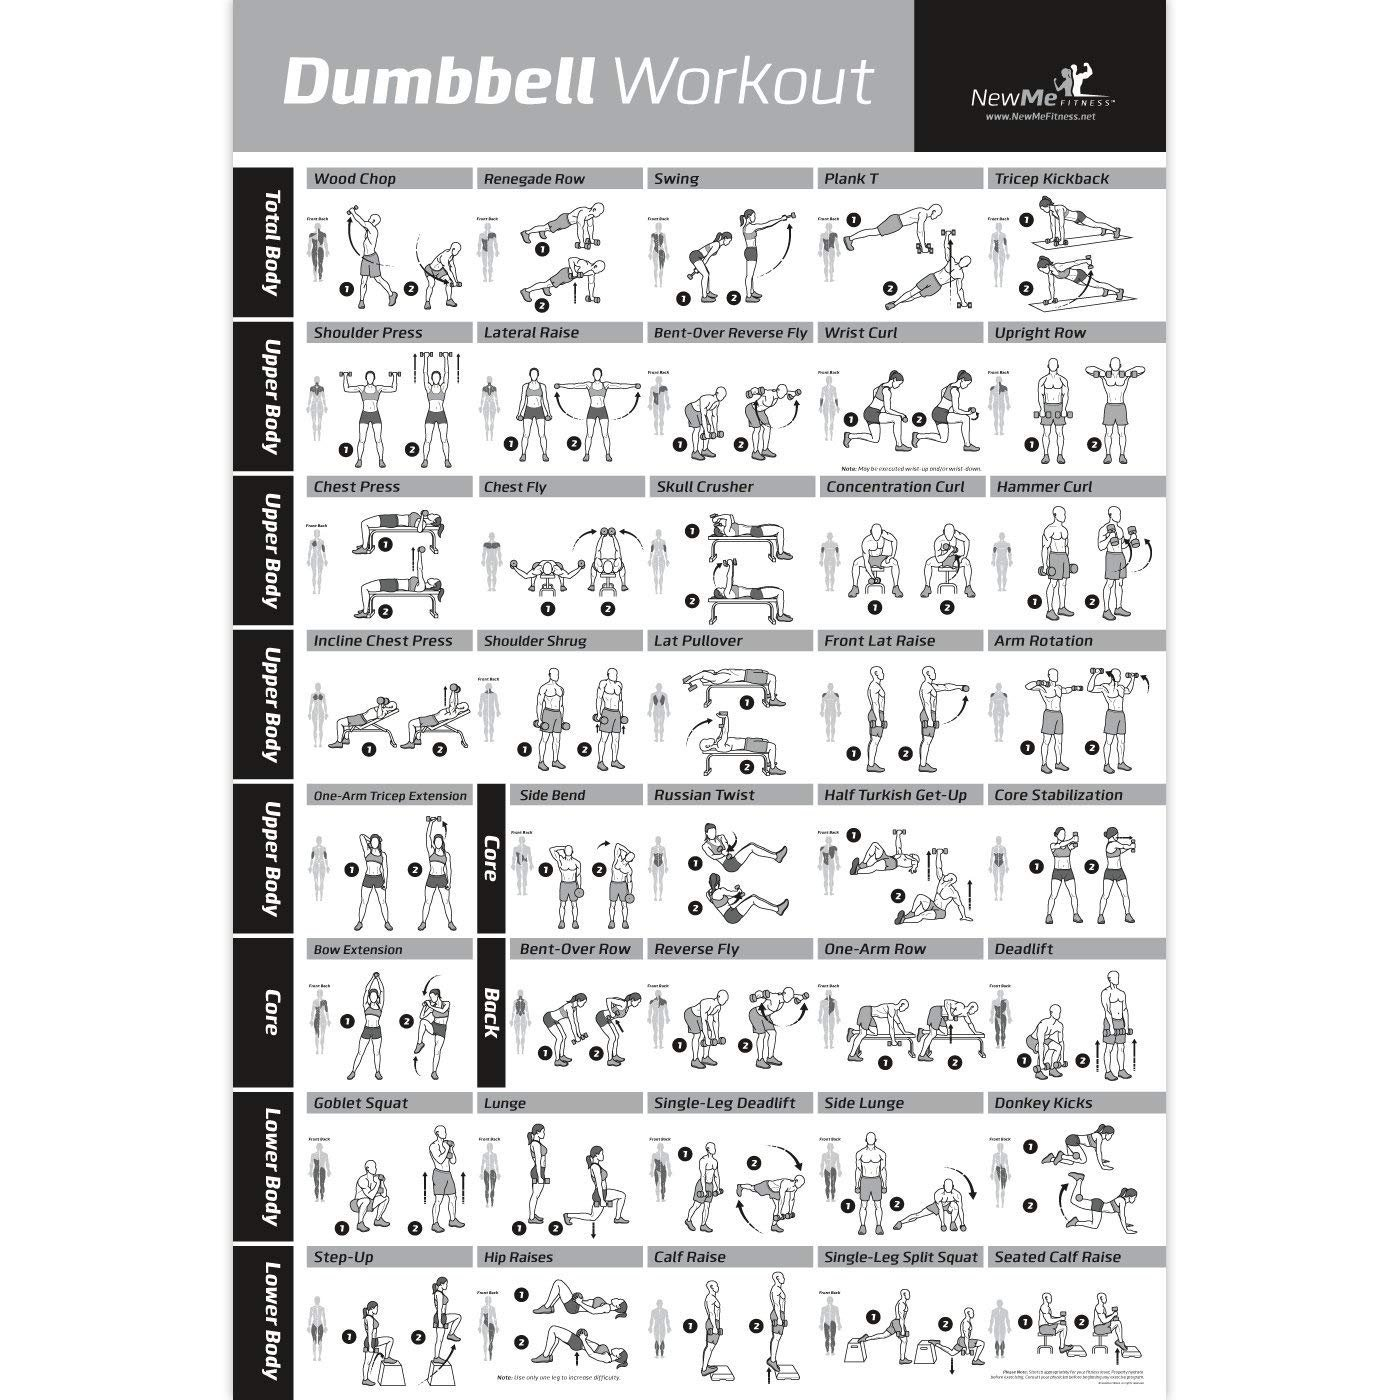 NewMe Fitness Dumbbell Workout Exercise Poster - Now Laminated - Strength  Training Chart - Build Muscle, Tone & Tighten - Home Gym Weight Lifting